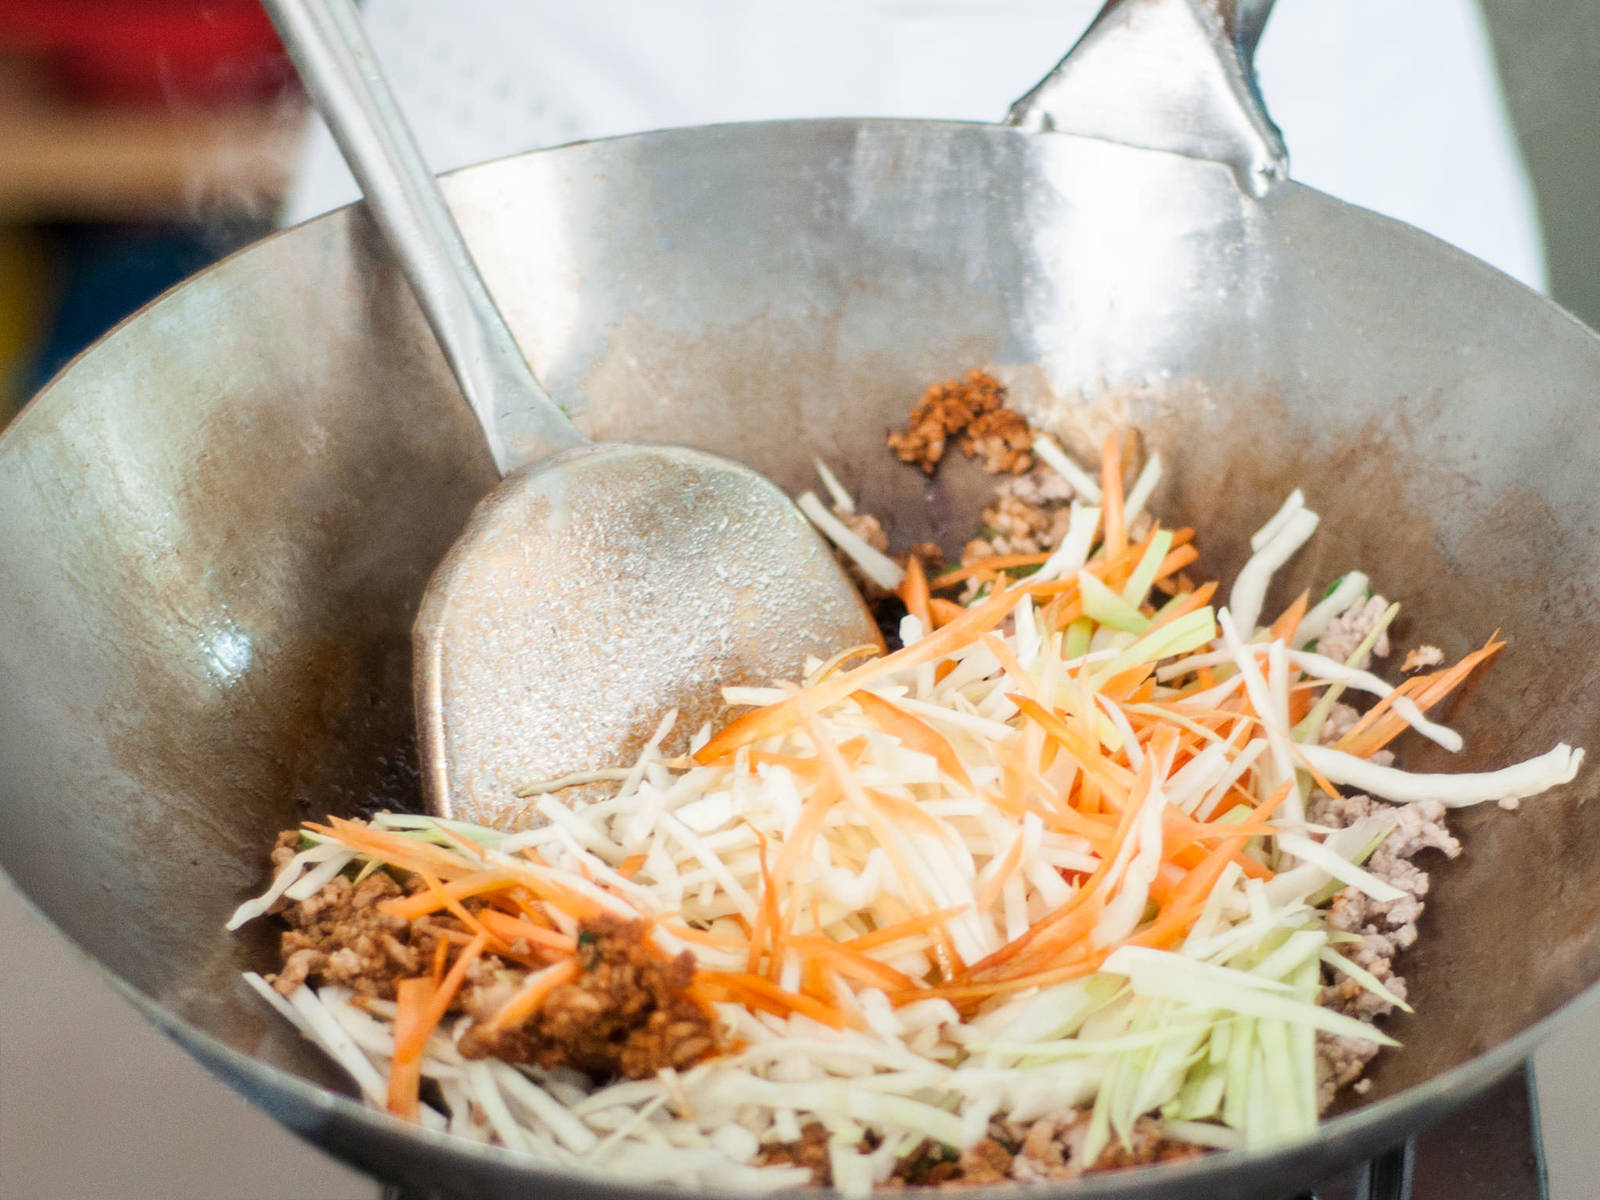 Add oil to a wok and fry ground pork for approx. 2 – 3 min. until browned. Add carrots and white cabbage and cook on low heat until softened for approx. 6 – 7 min. . Add sliced ginger, garlic, and green onions.  Season with five spice powder, salt, pepper, and dark soy sauce to taste.